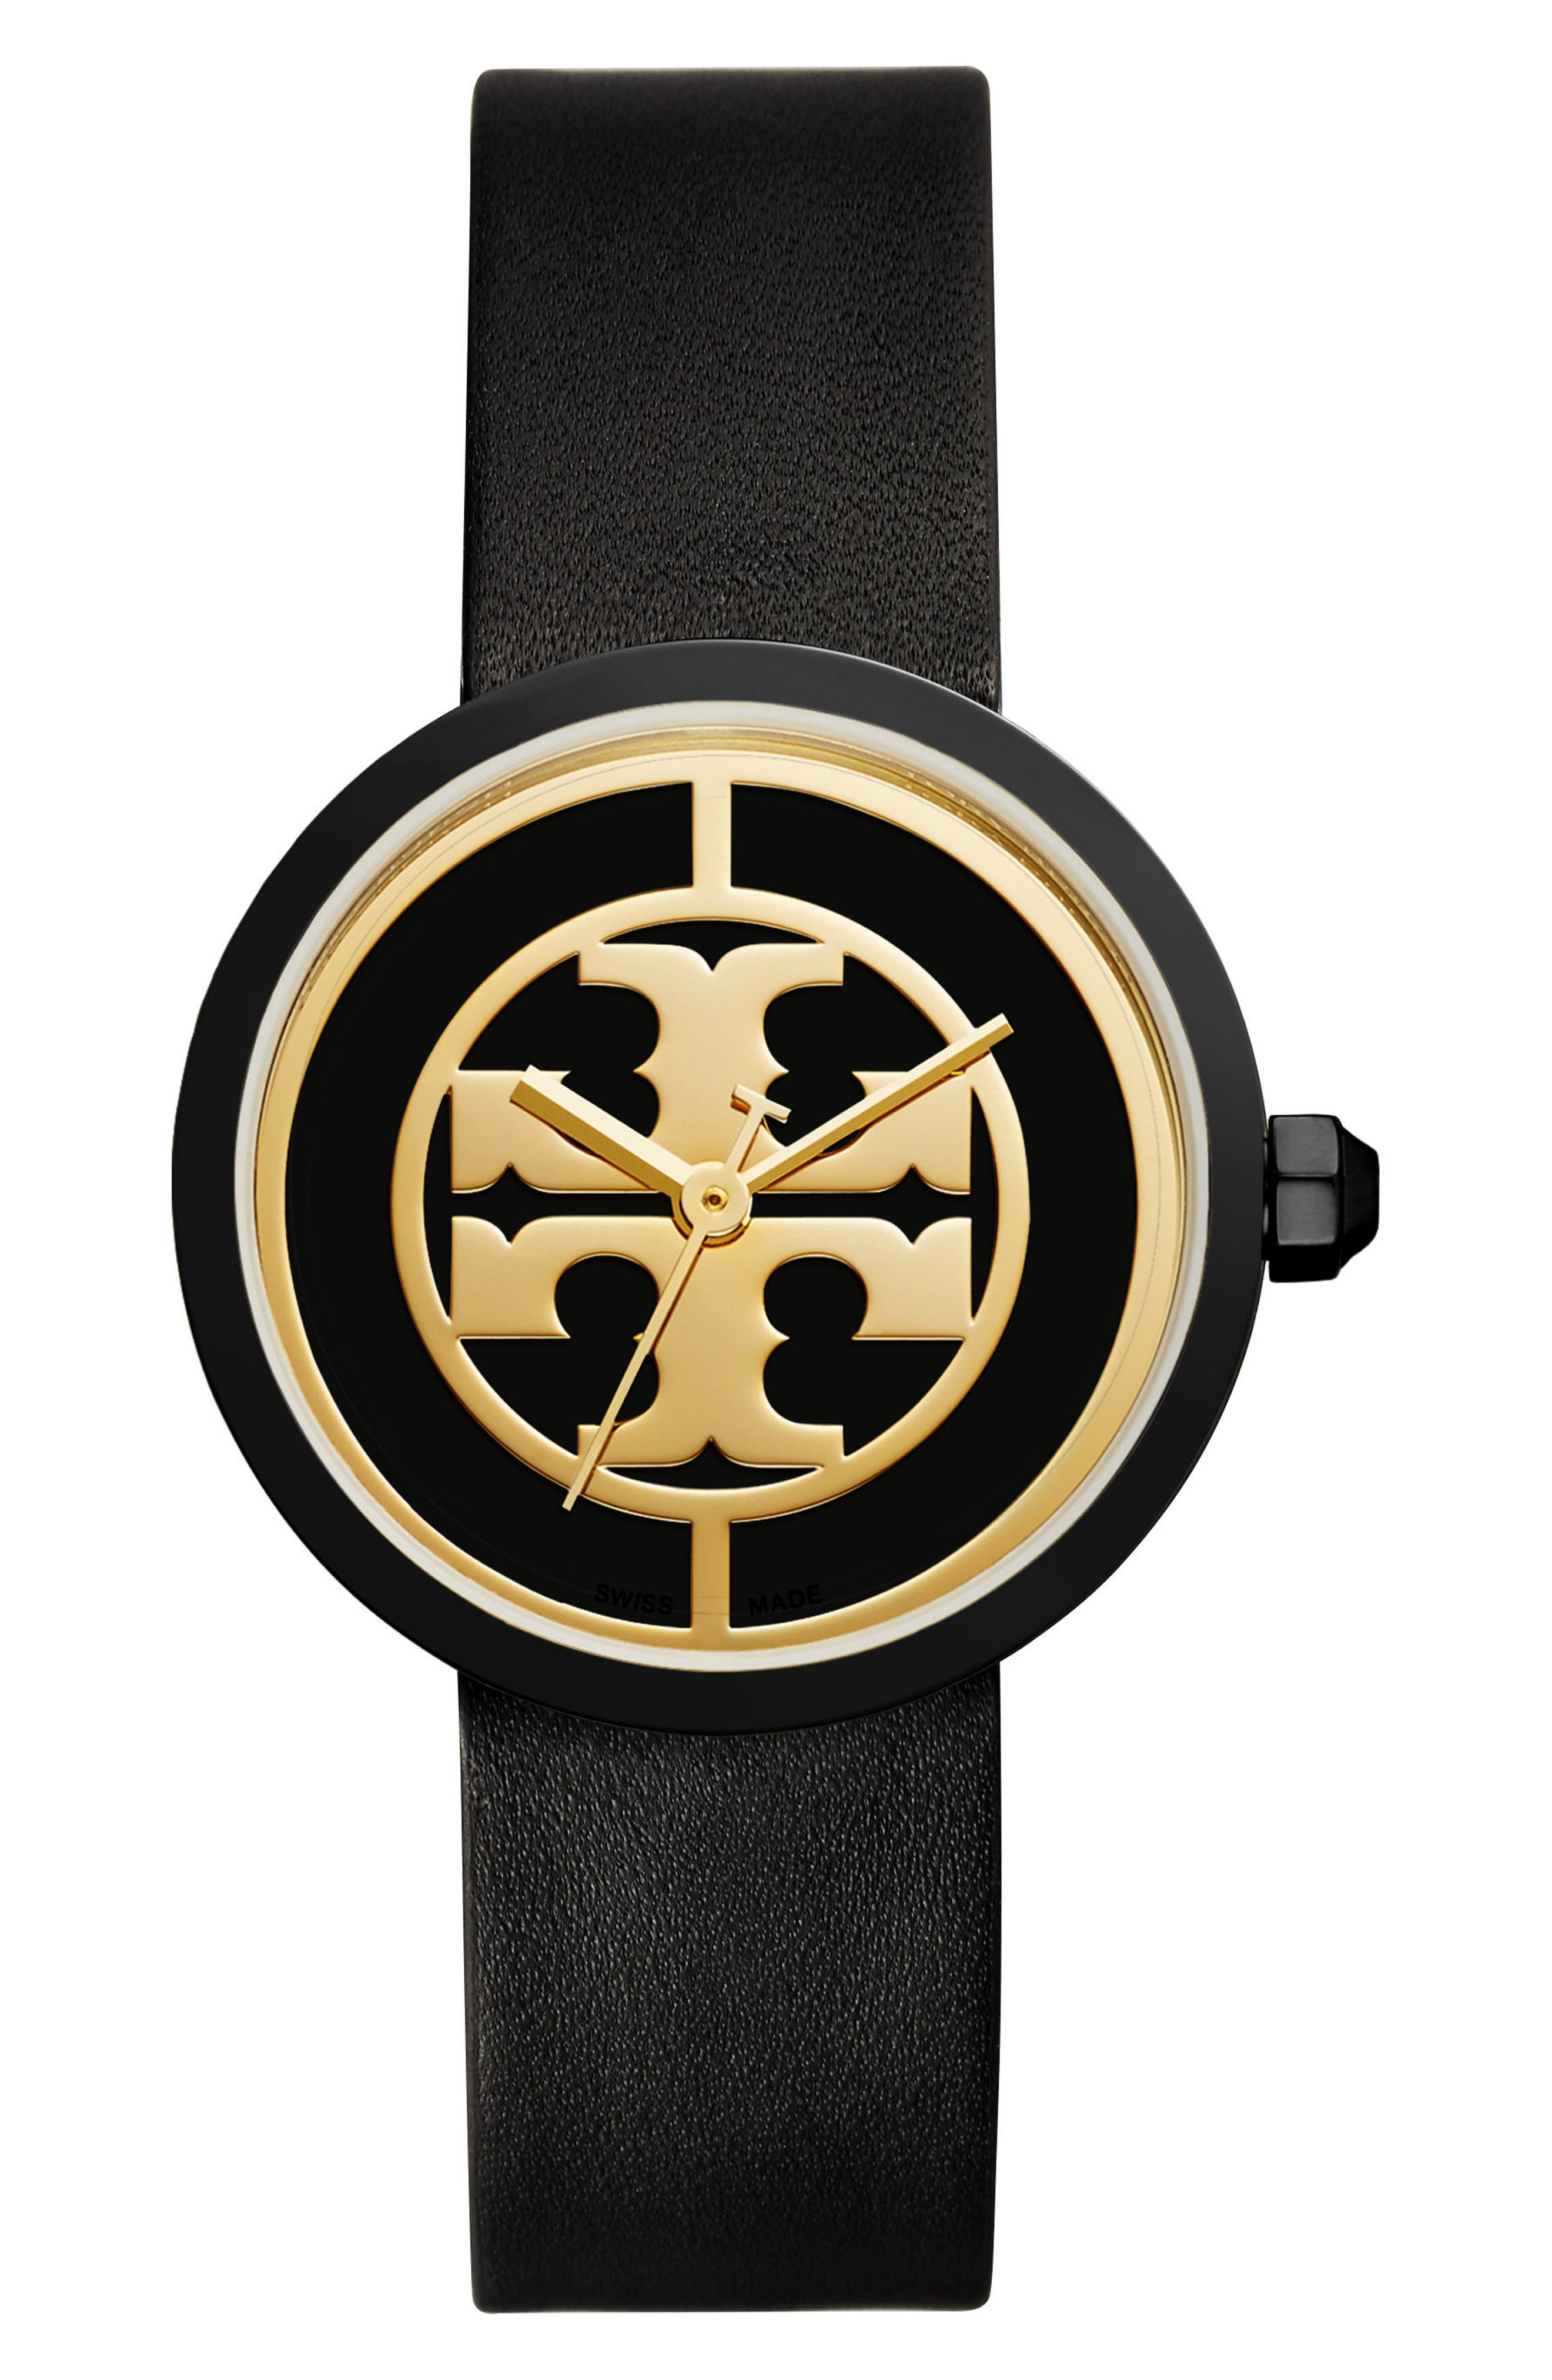 TORY BURCH, Reva Logo Dial Leather Strap Watch, 36mm, Main thumbnail 1, color, BLACK/ GOLD